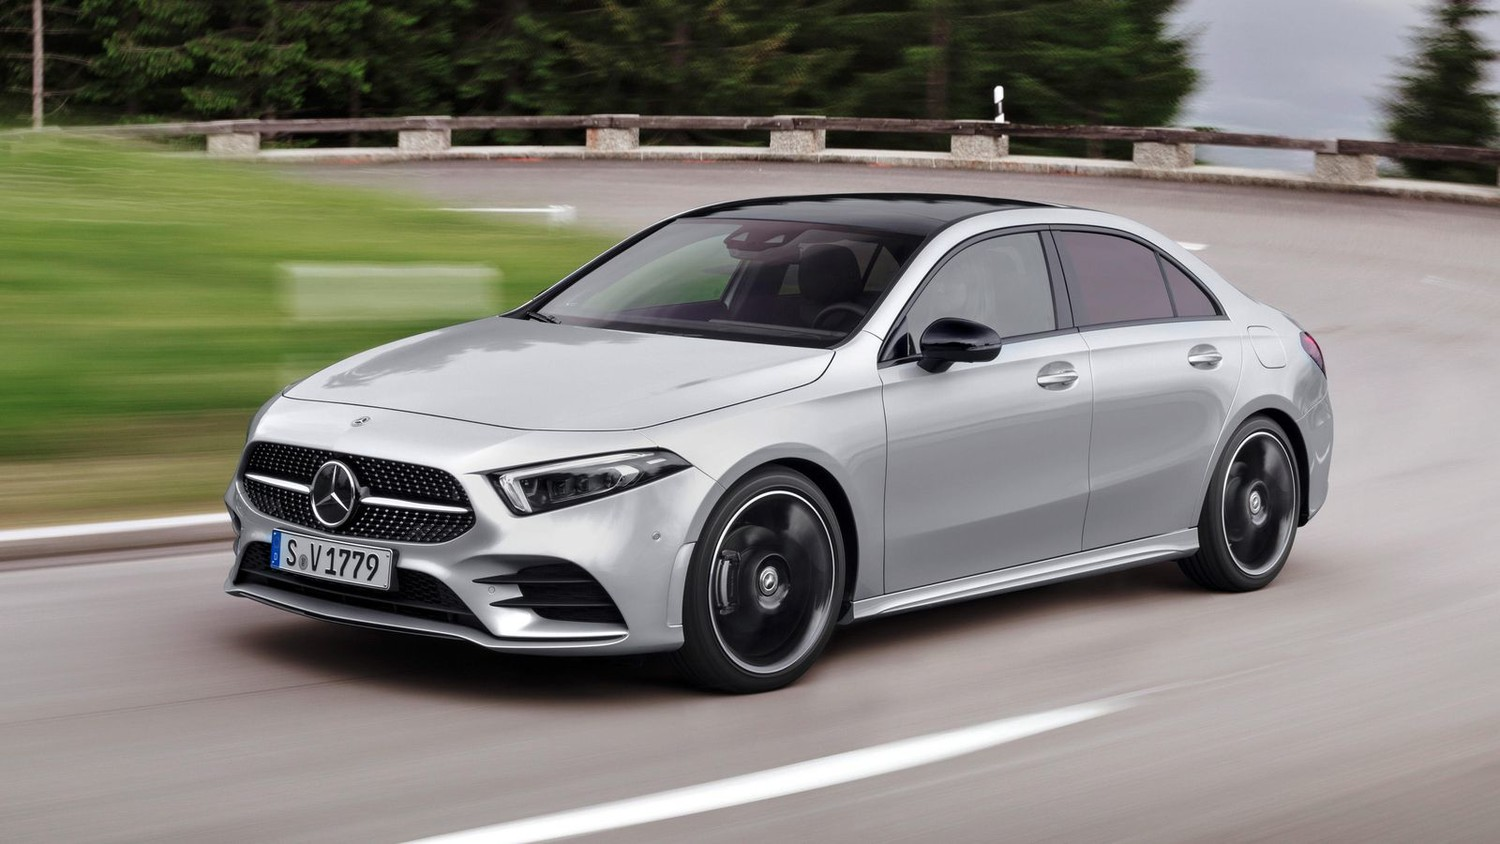 The new Mercedes-Benz A Class